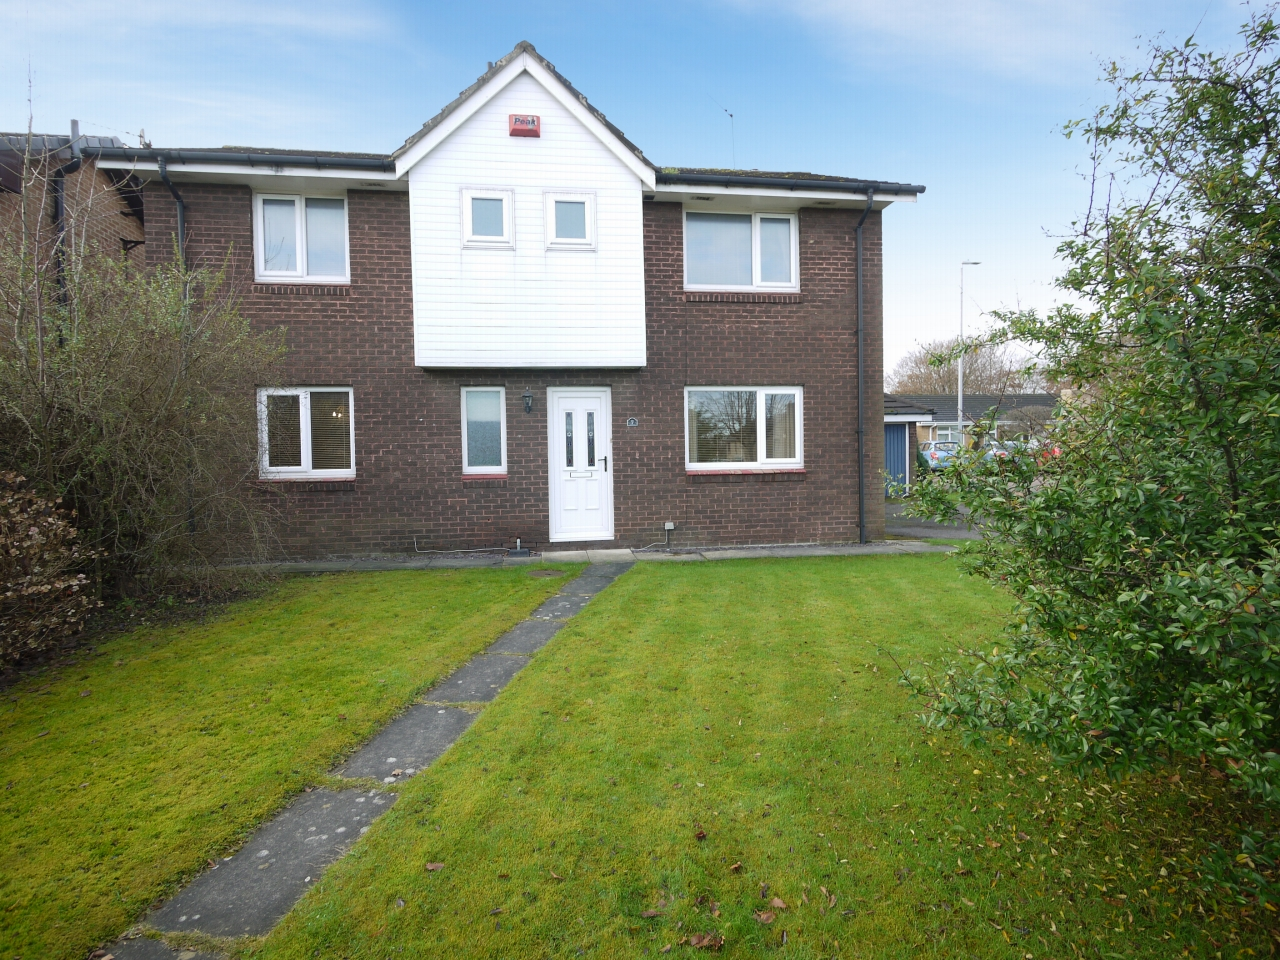 4 bedroom detached house For Sale in Brighouse - Photograph 19.